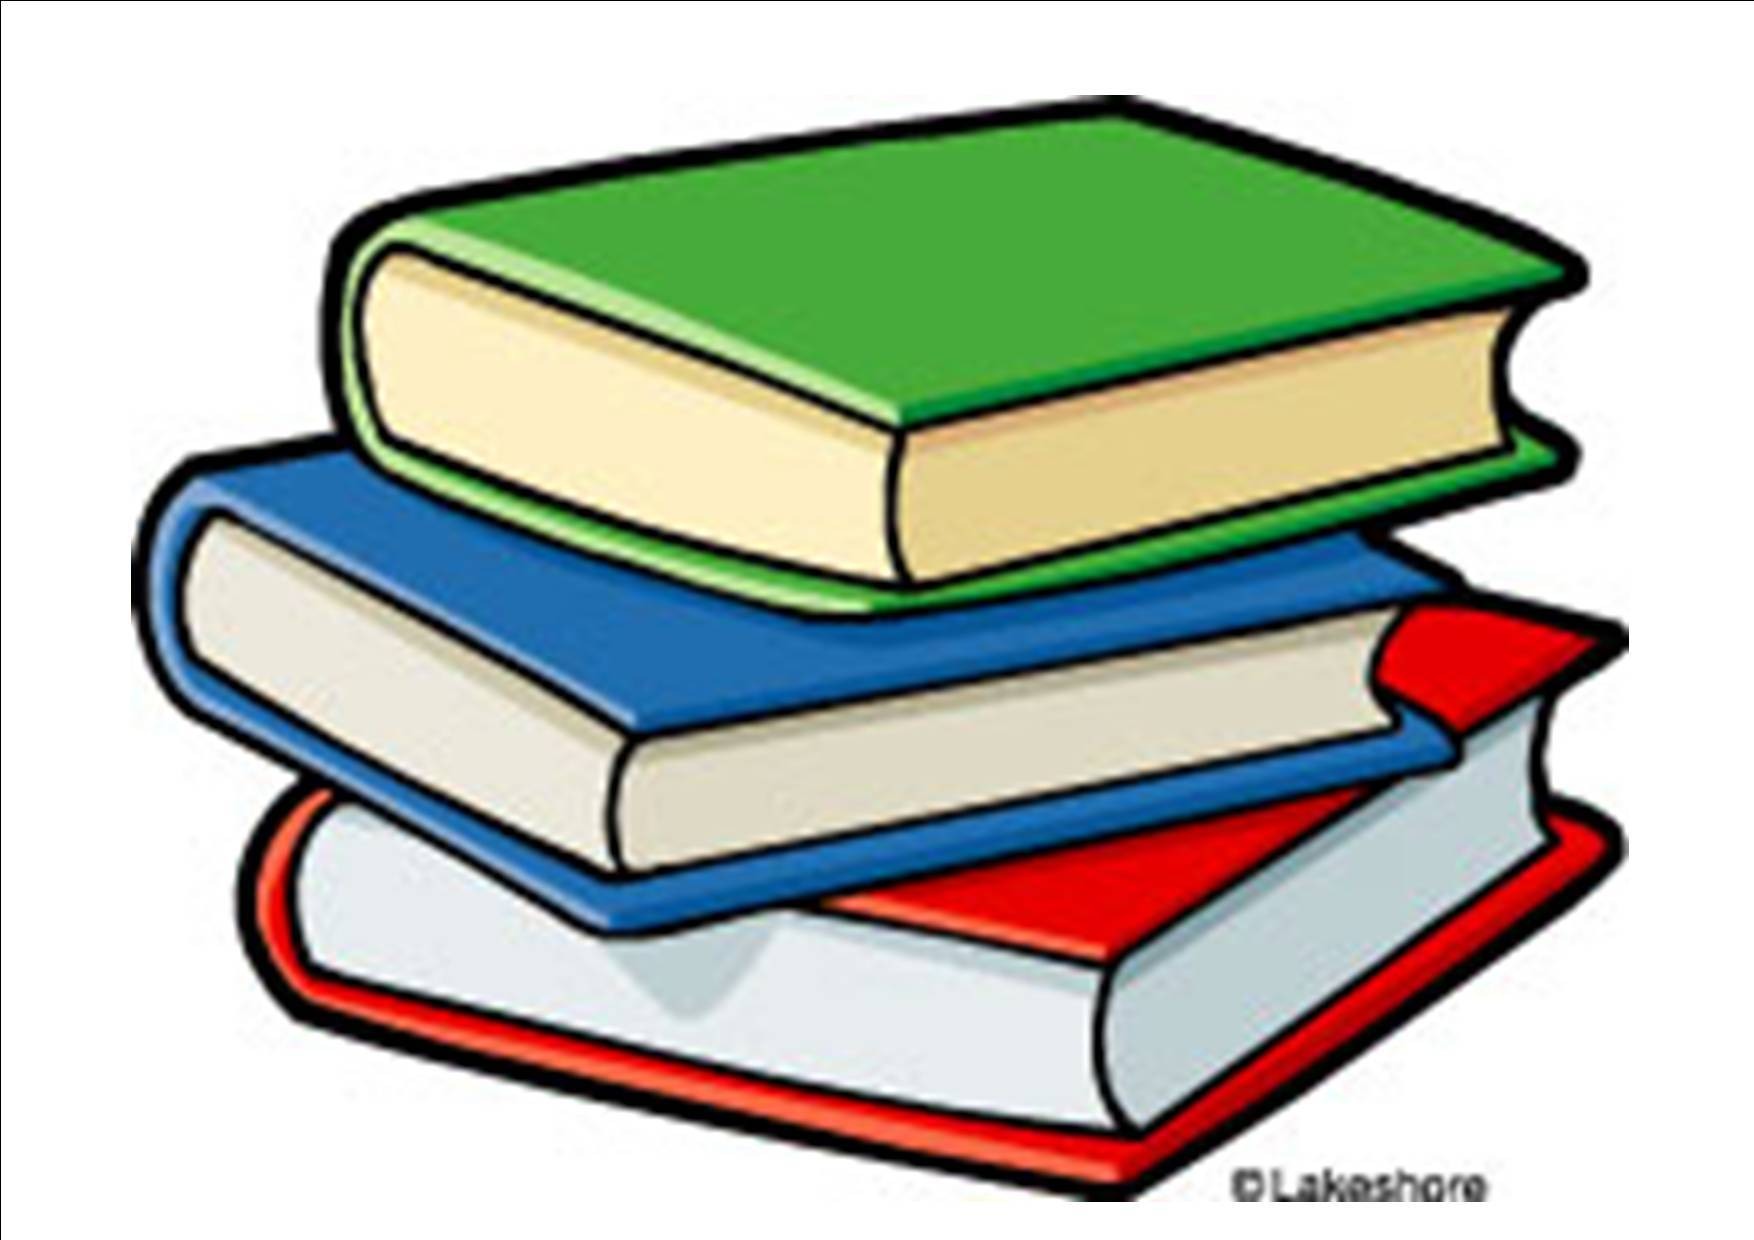 Book clipart. Image of books free